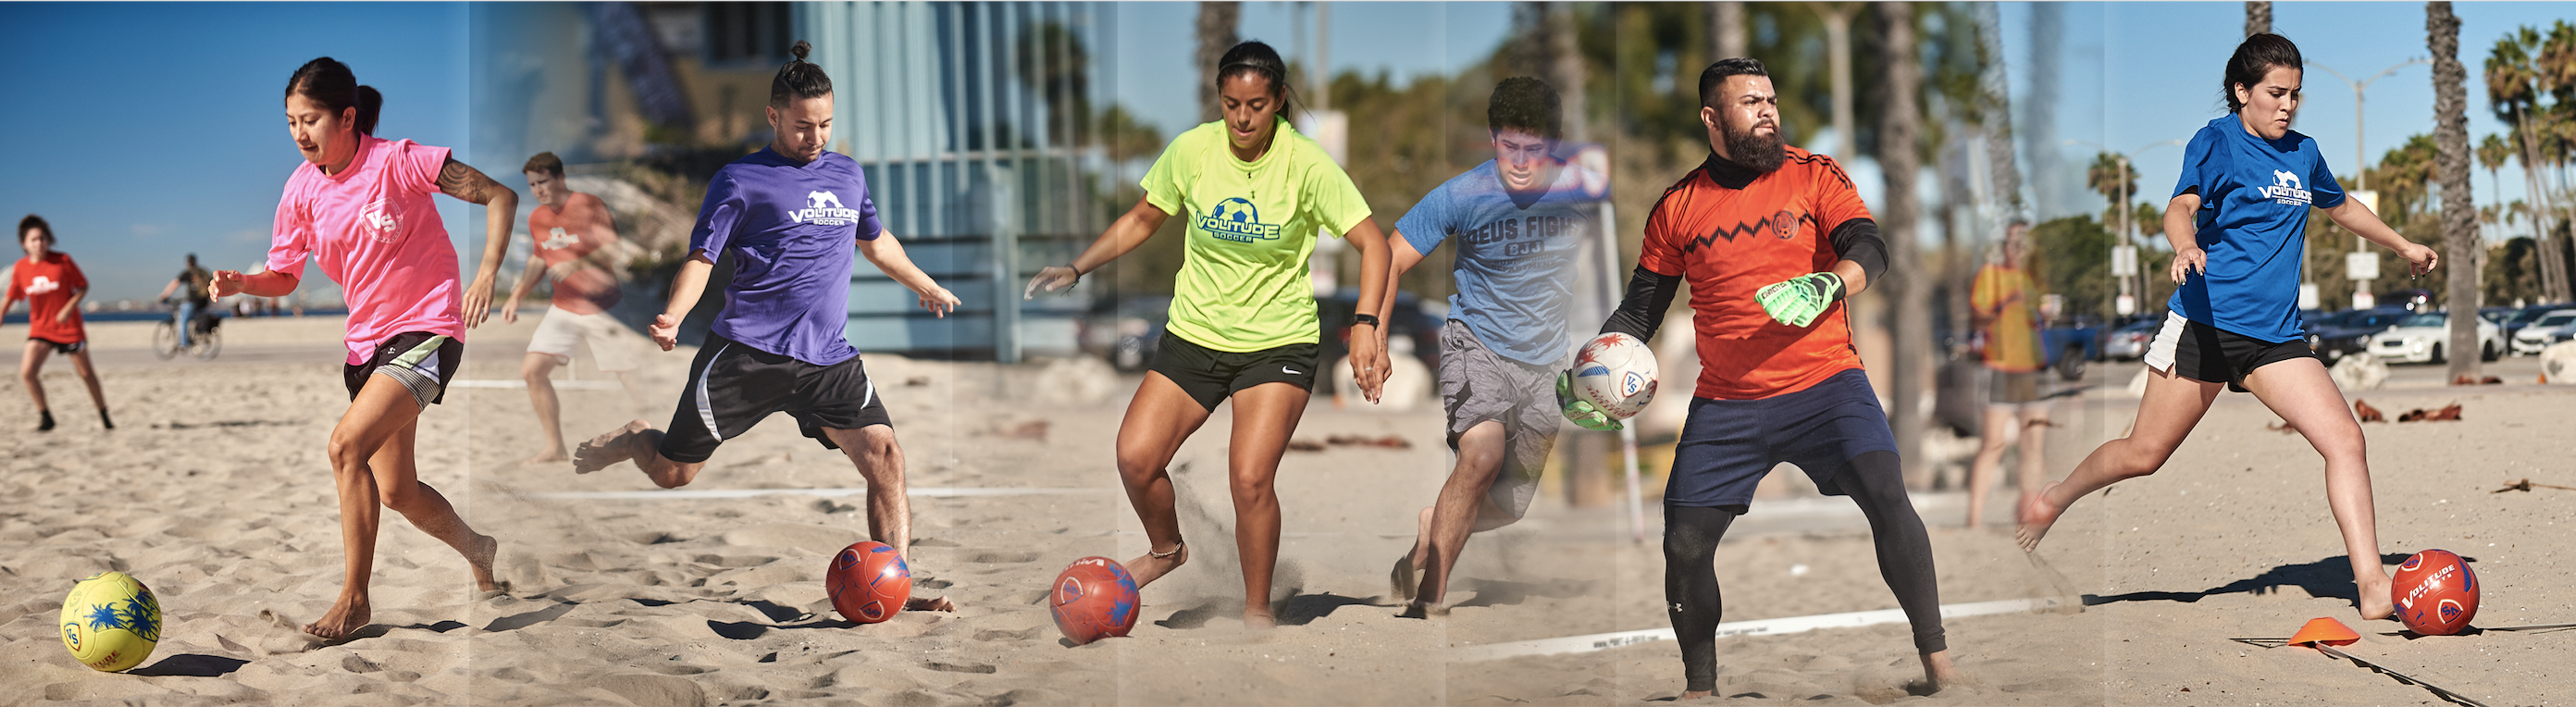 Long Beach Summer 2020 Sport Leagues